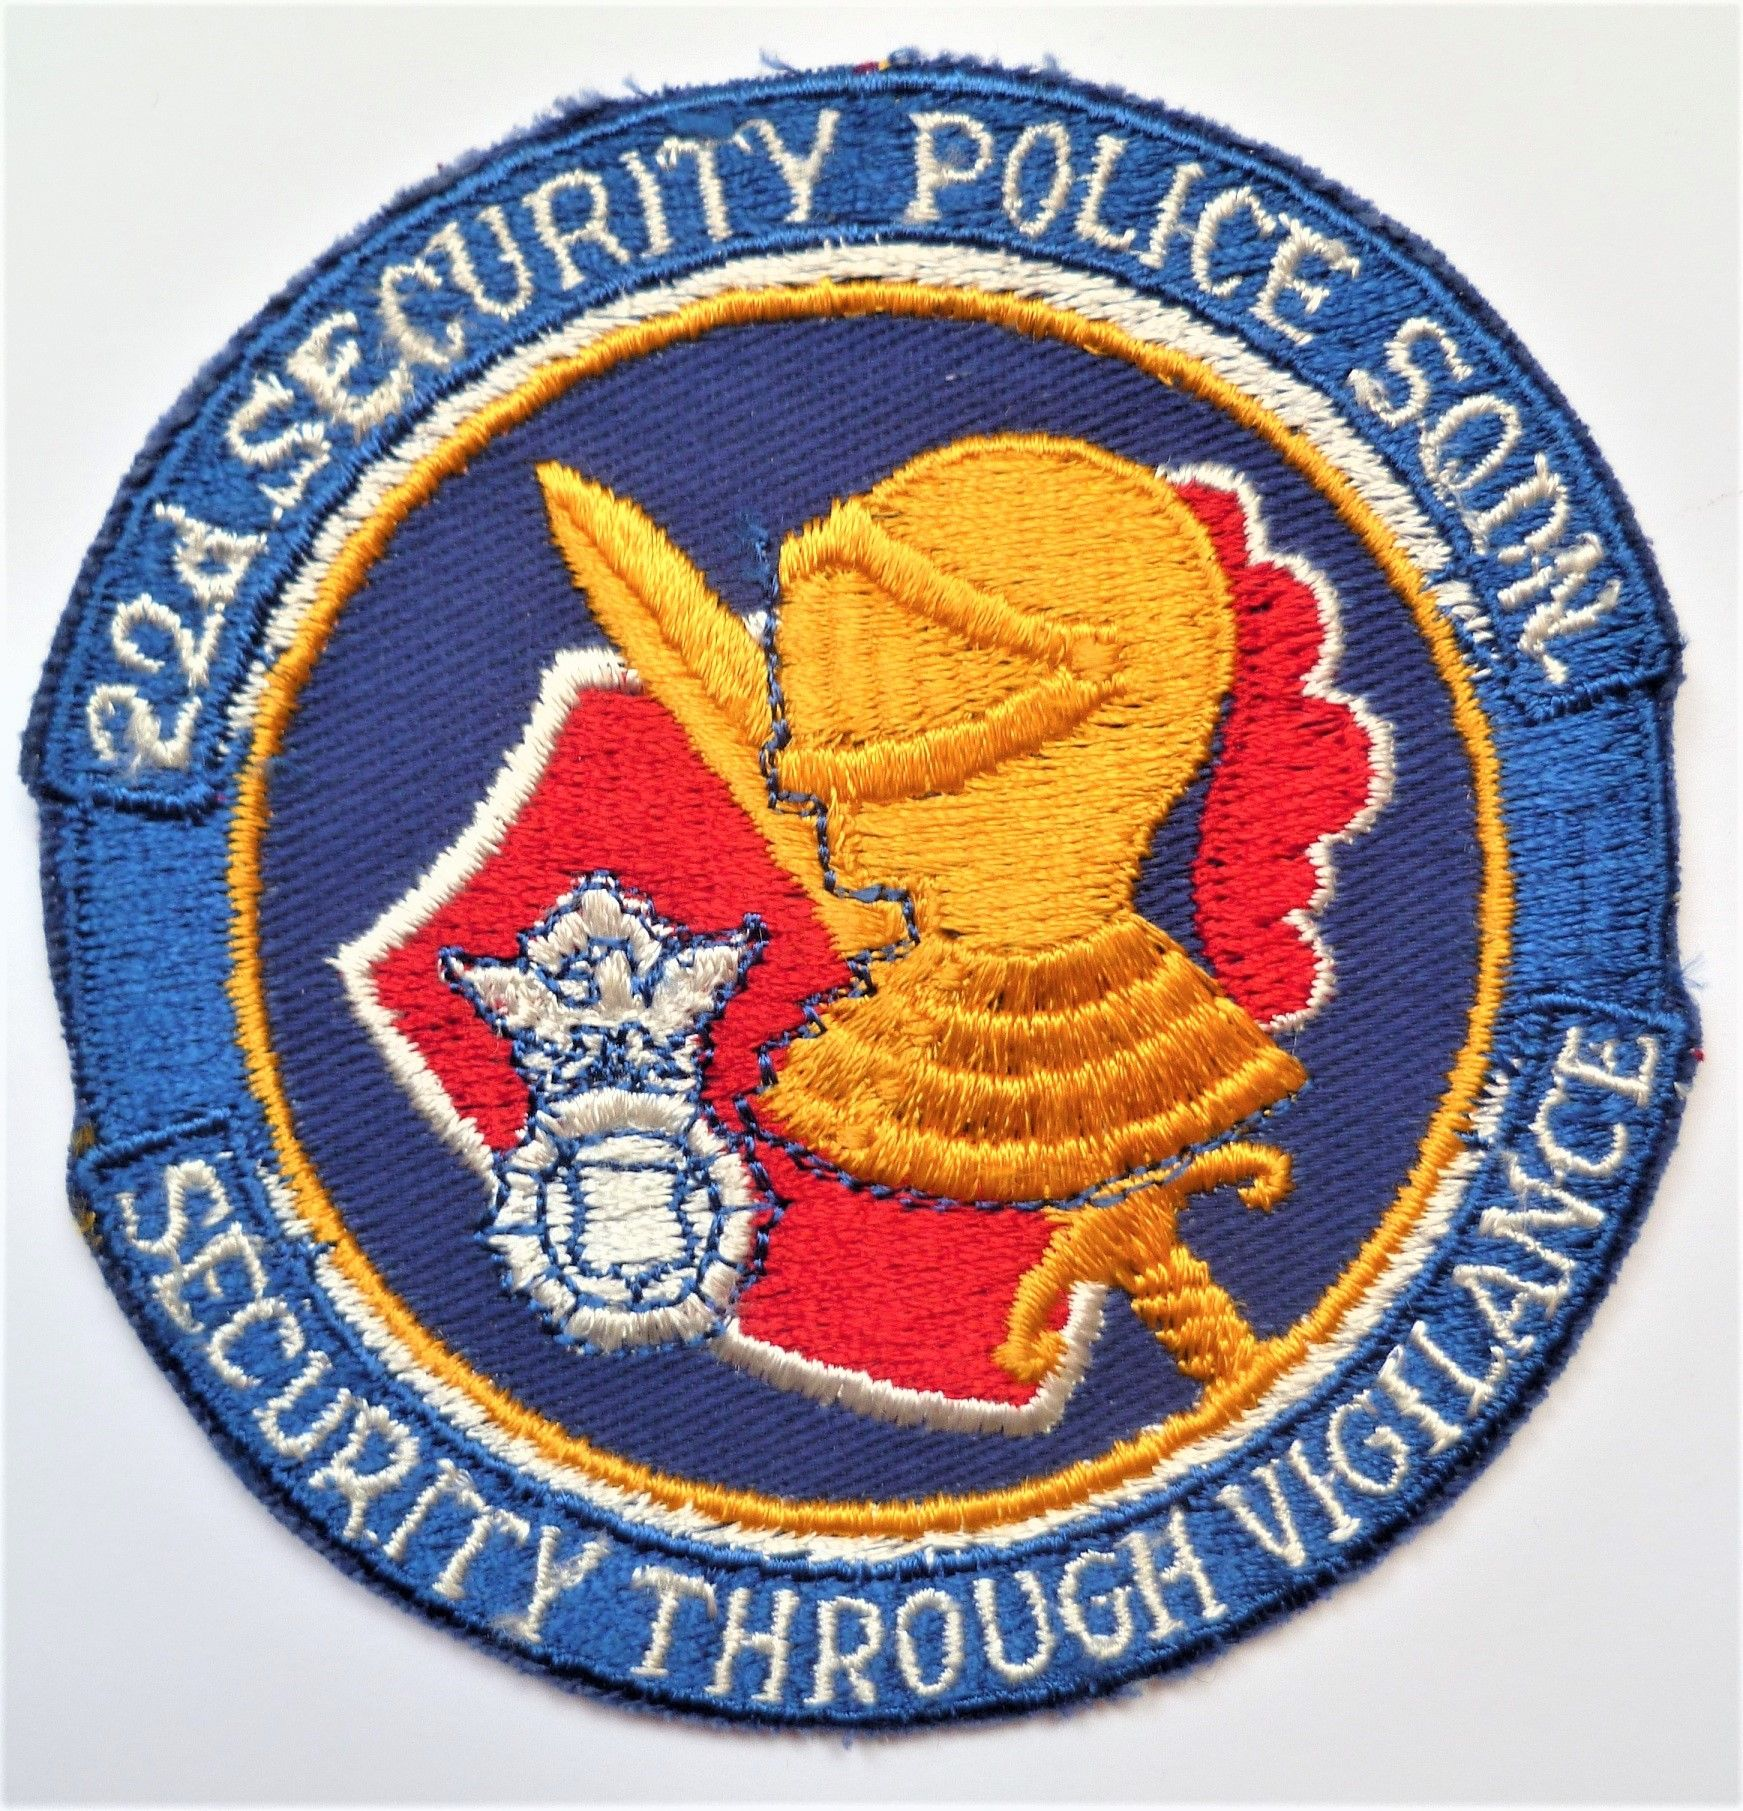 Pin By James Withey On American Militaria Military Insignia Police Patches Military Patch